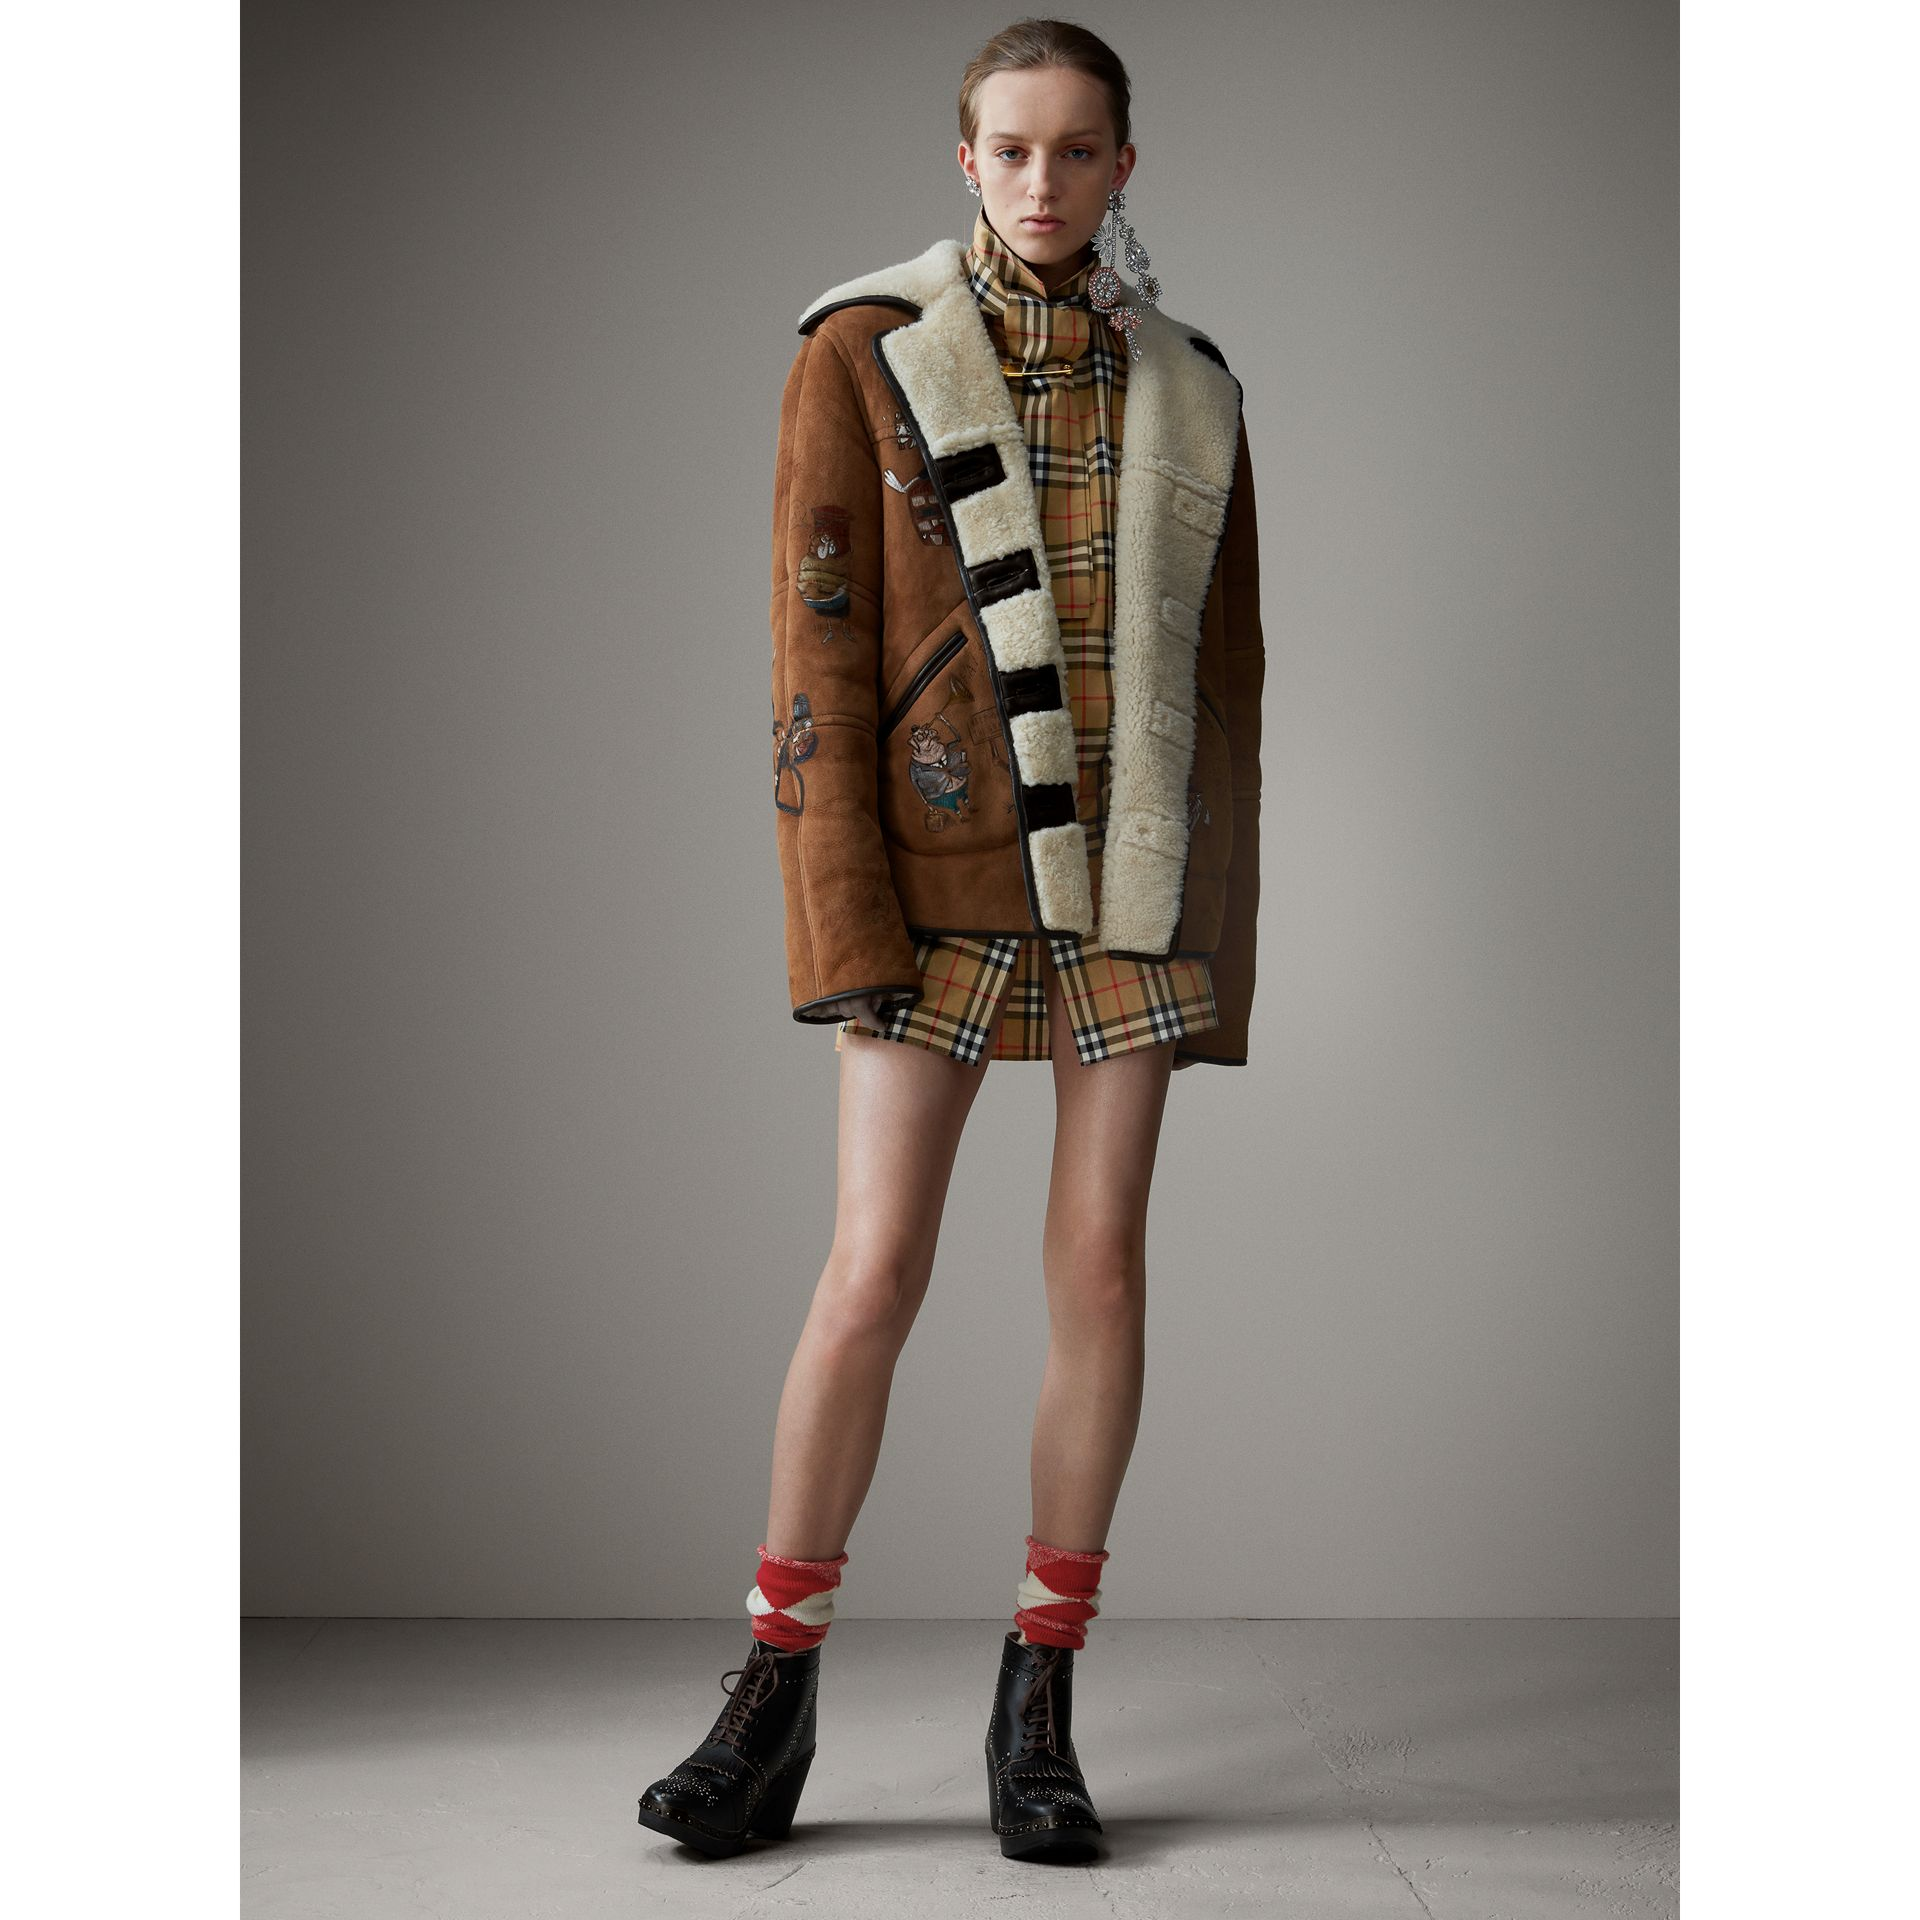 Sketch Print Shearling Jacket in Caramel - Women   Burberry Singapore - gallery image 7